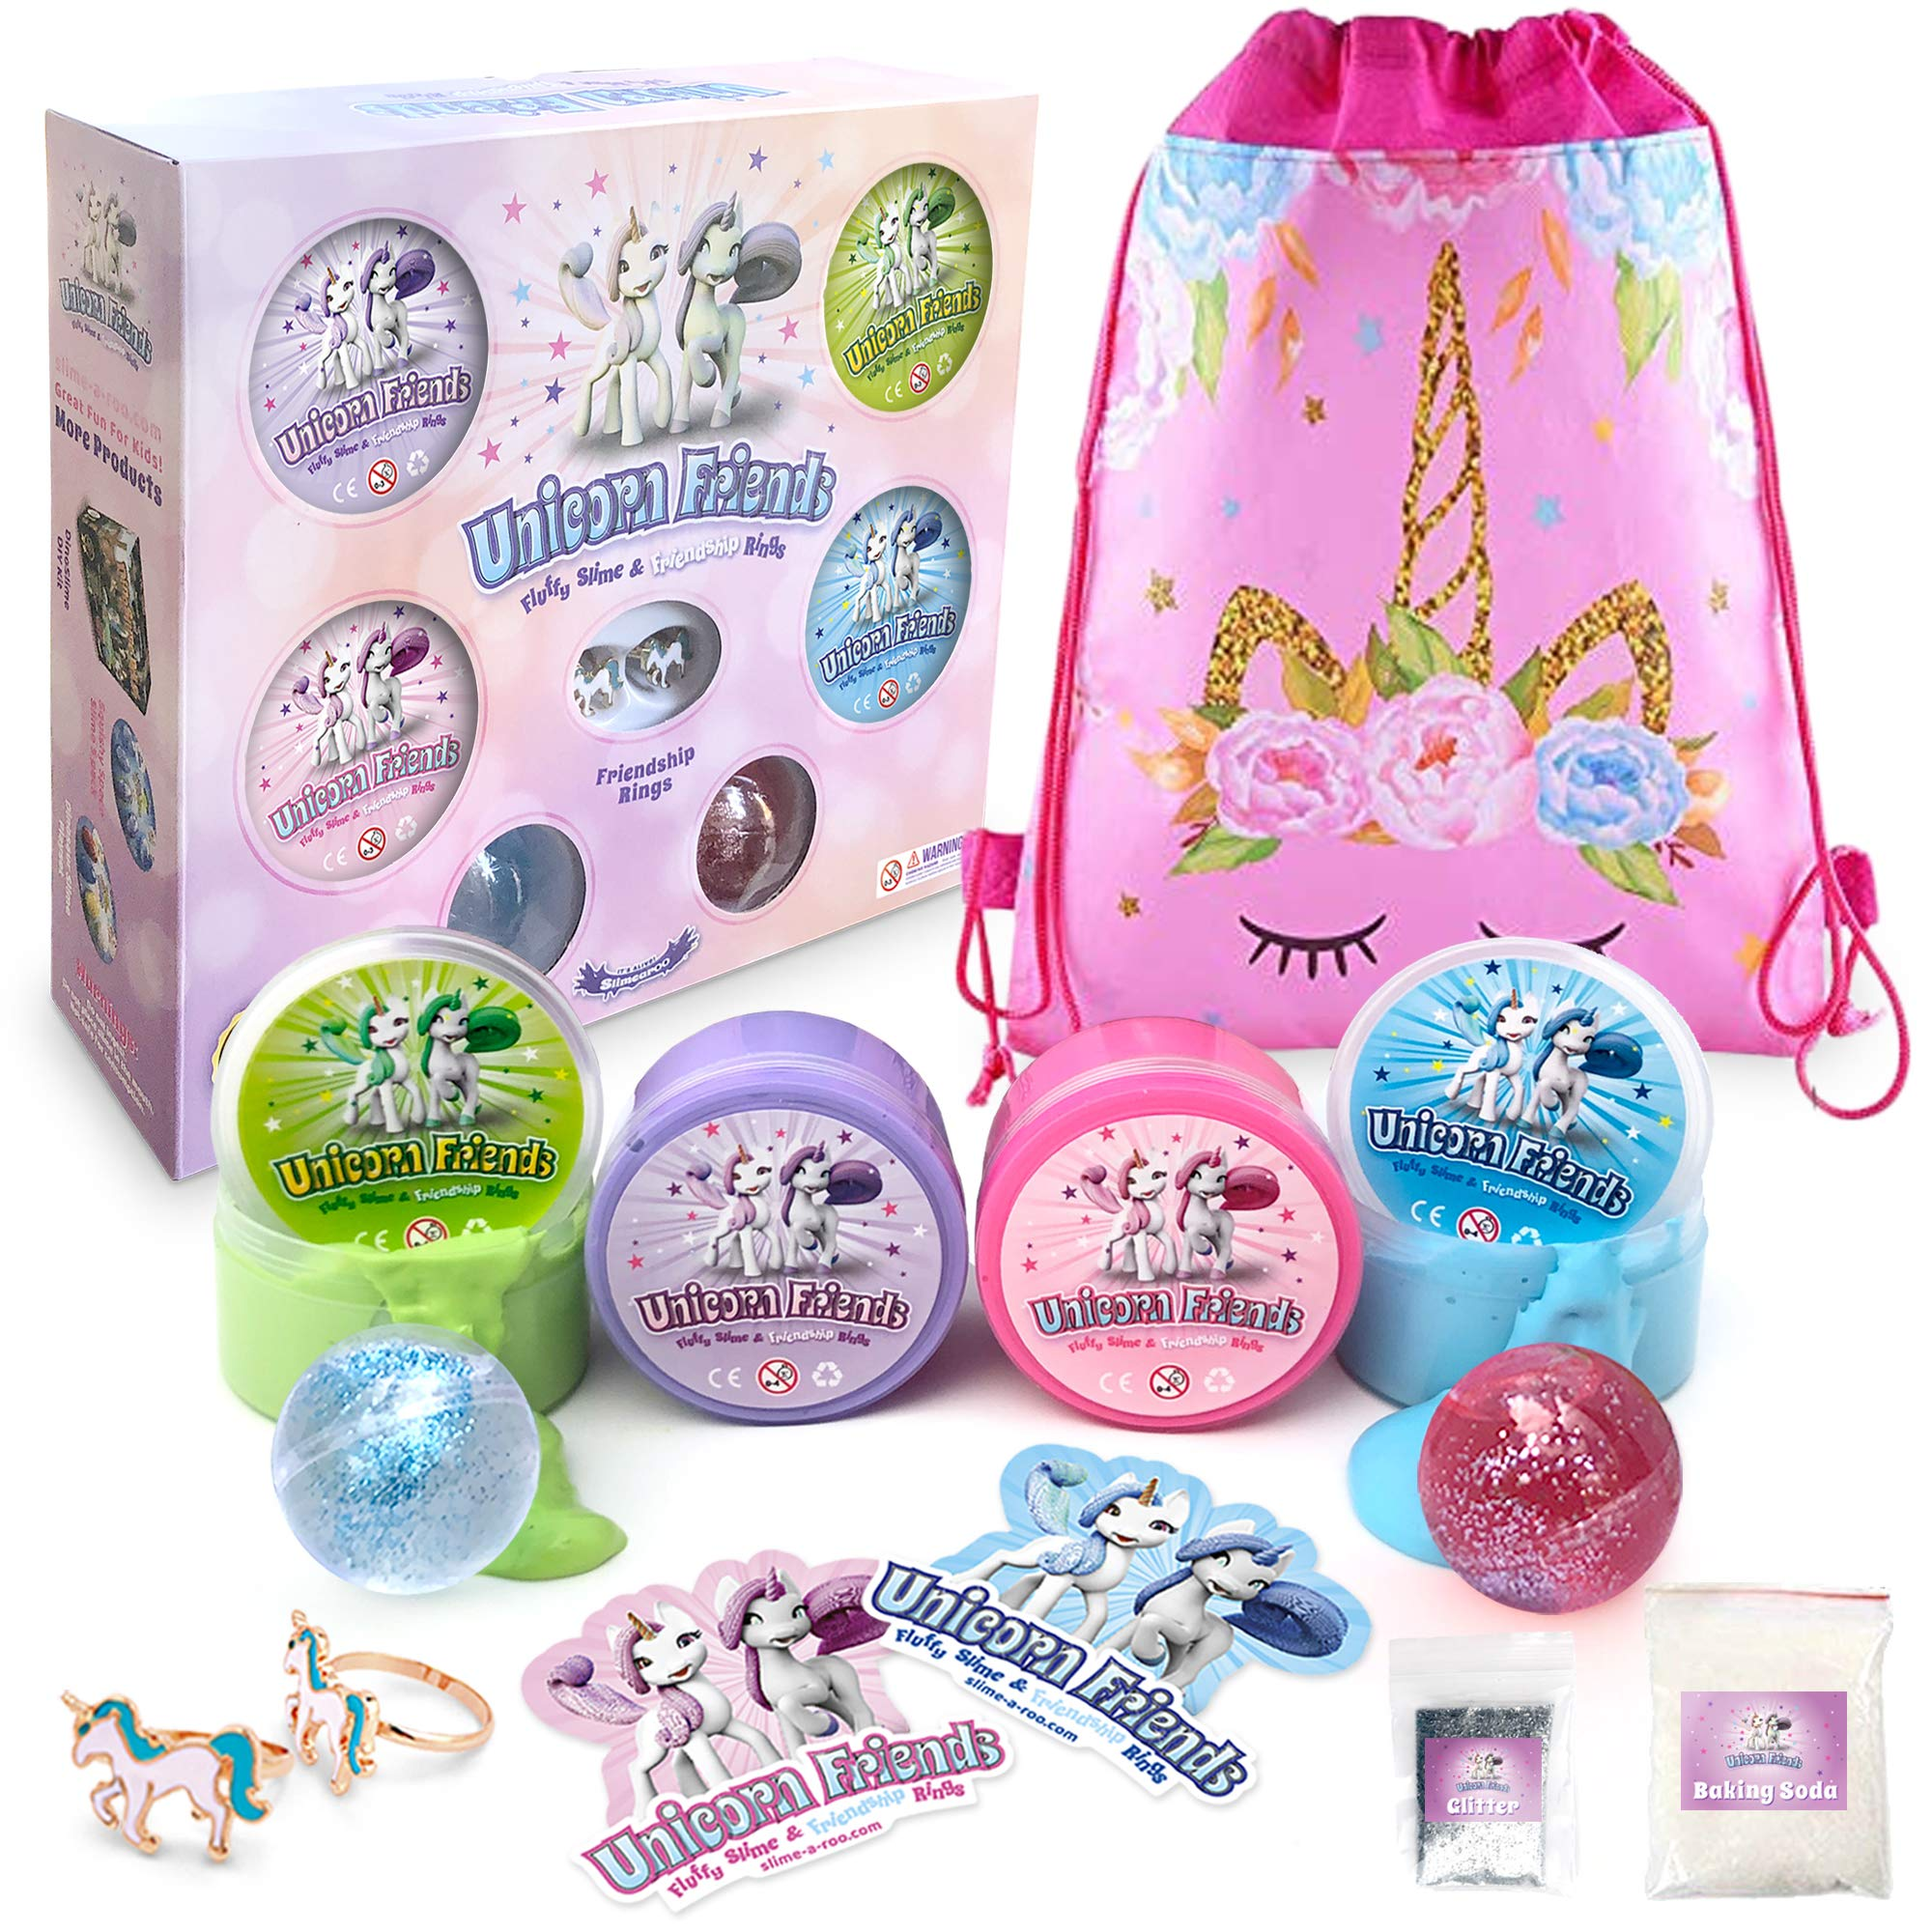 Unicorn Slime Kit for Girls Friends - Fluffy Cloud Poop Slime Kit with Glitter Toy Set - Includes Friendship Rings Gift Set Surprise by Slime-a-Roo